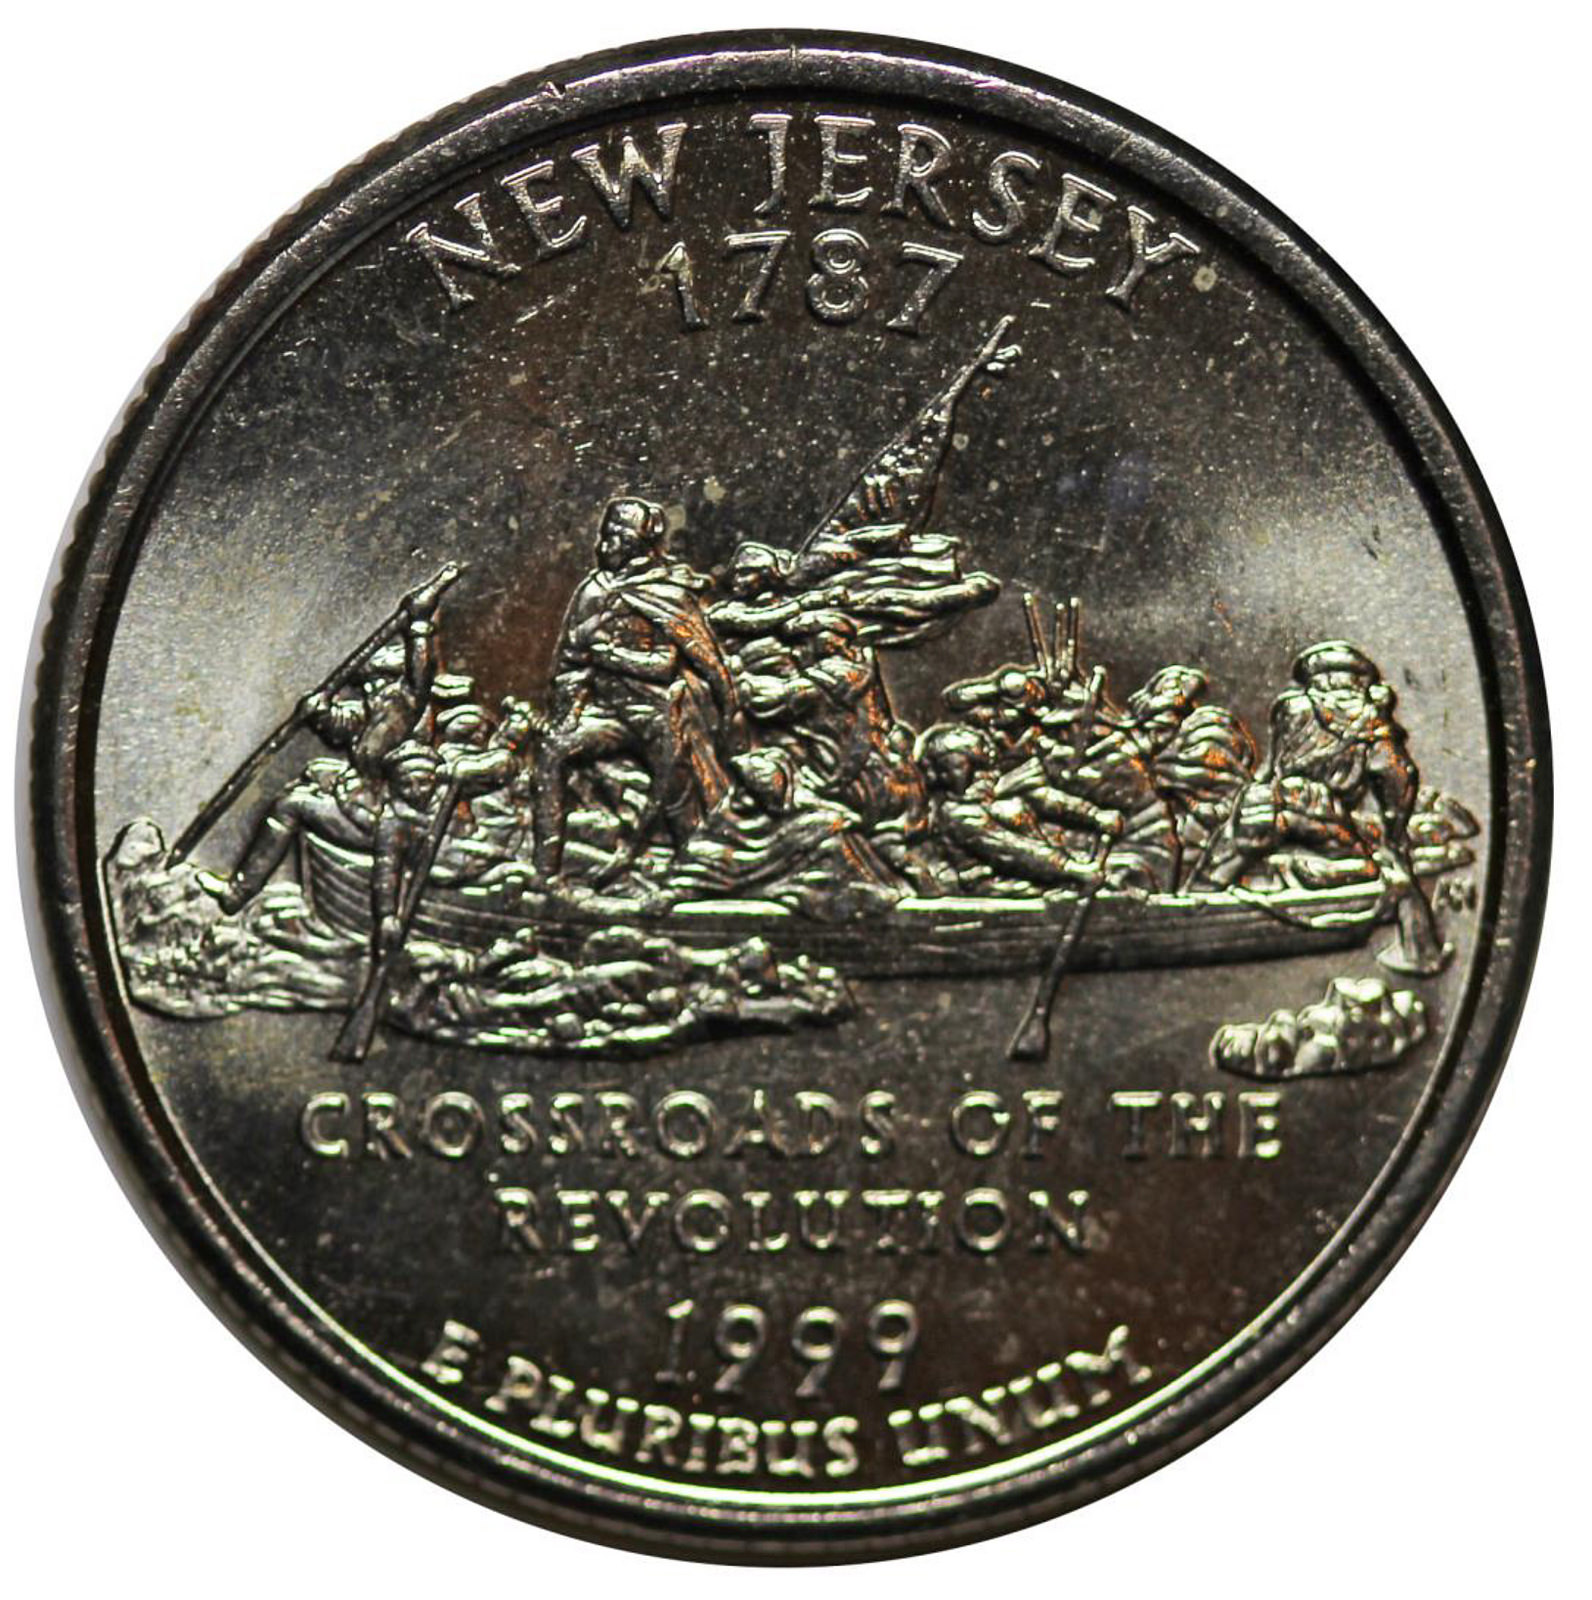 Have A Gold 1999 Quarter New Jersey Is